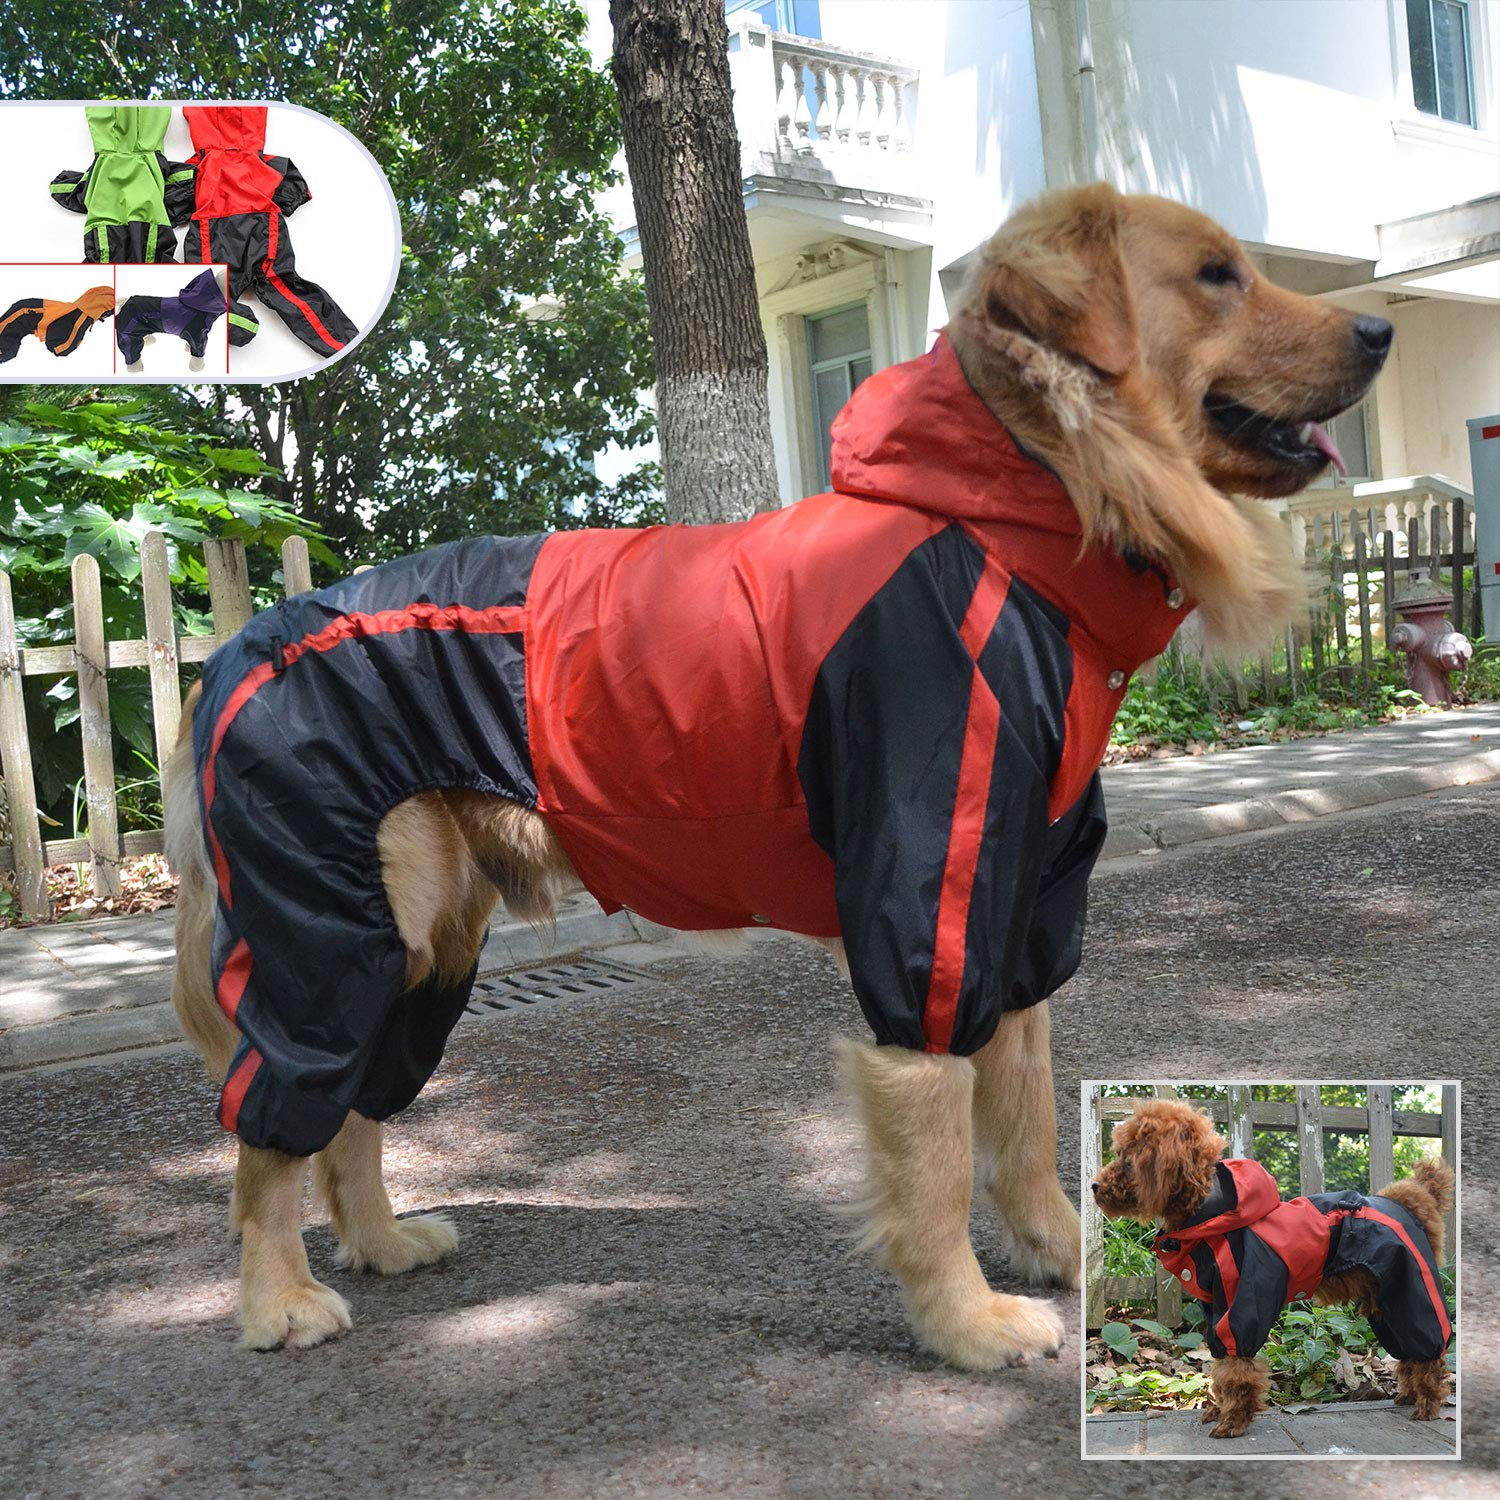 Pet Apparel Large Dog Clothing Raincoat Pet Clothes Rain Coat For Big Large Dogs Red Green Waterproof (L-XL, Red) by Lovelonglong